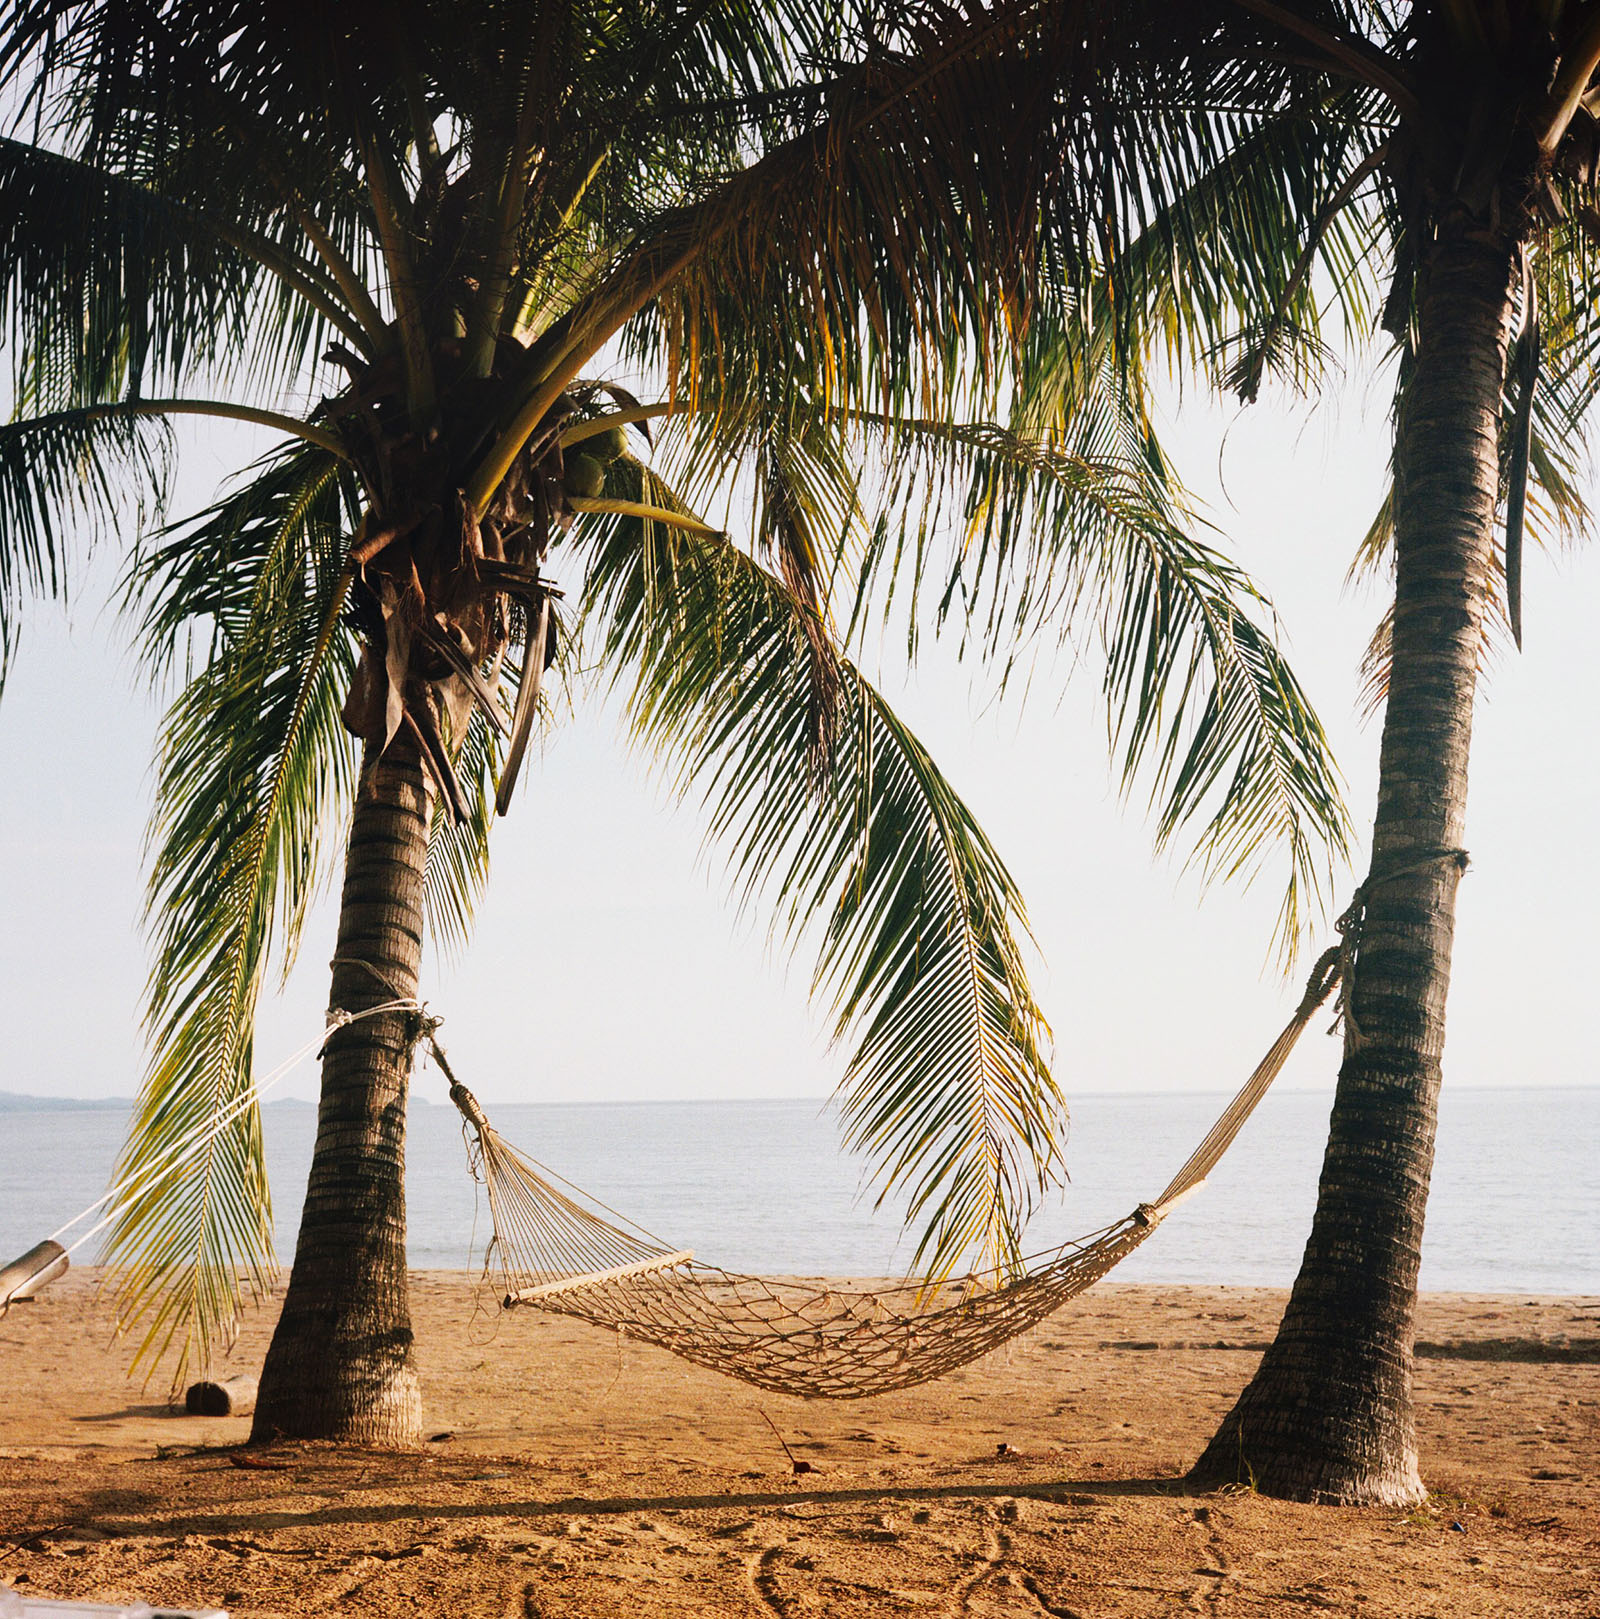 Hammock between palm trees at Baan Koh Mak | Thailand Travel Photos